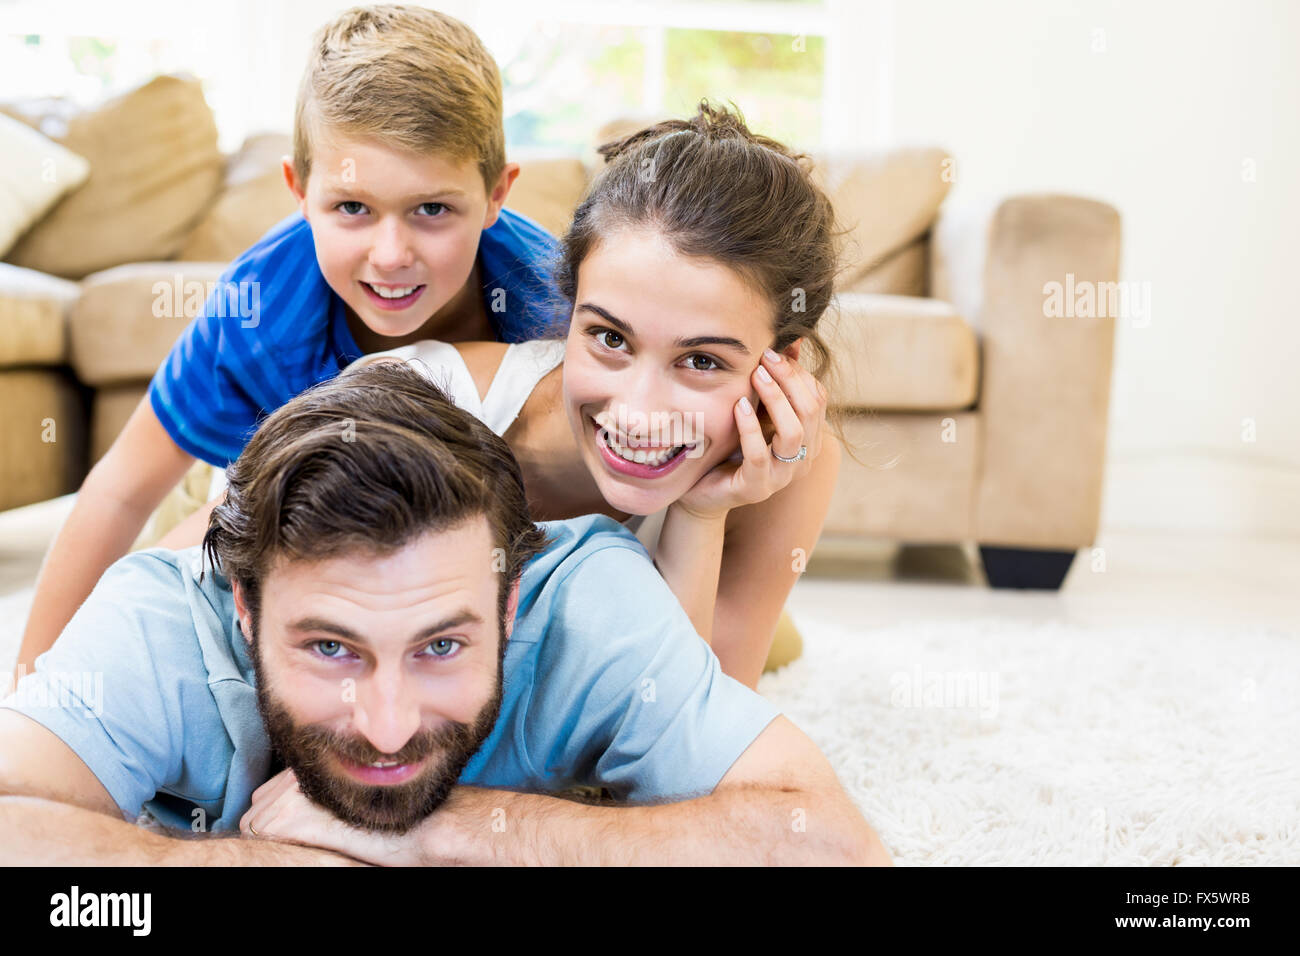 Portrait of parents and son lying on rug - Stock Image